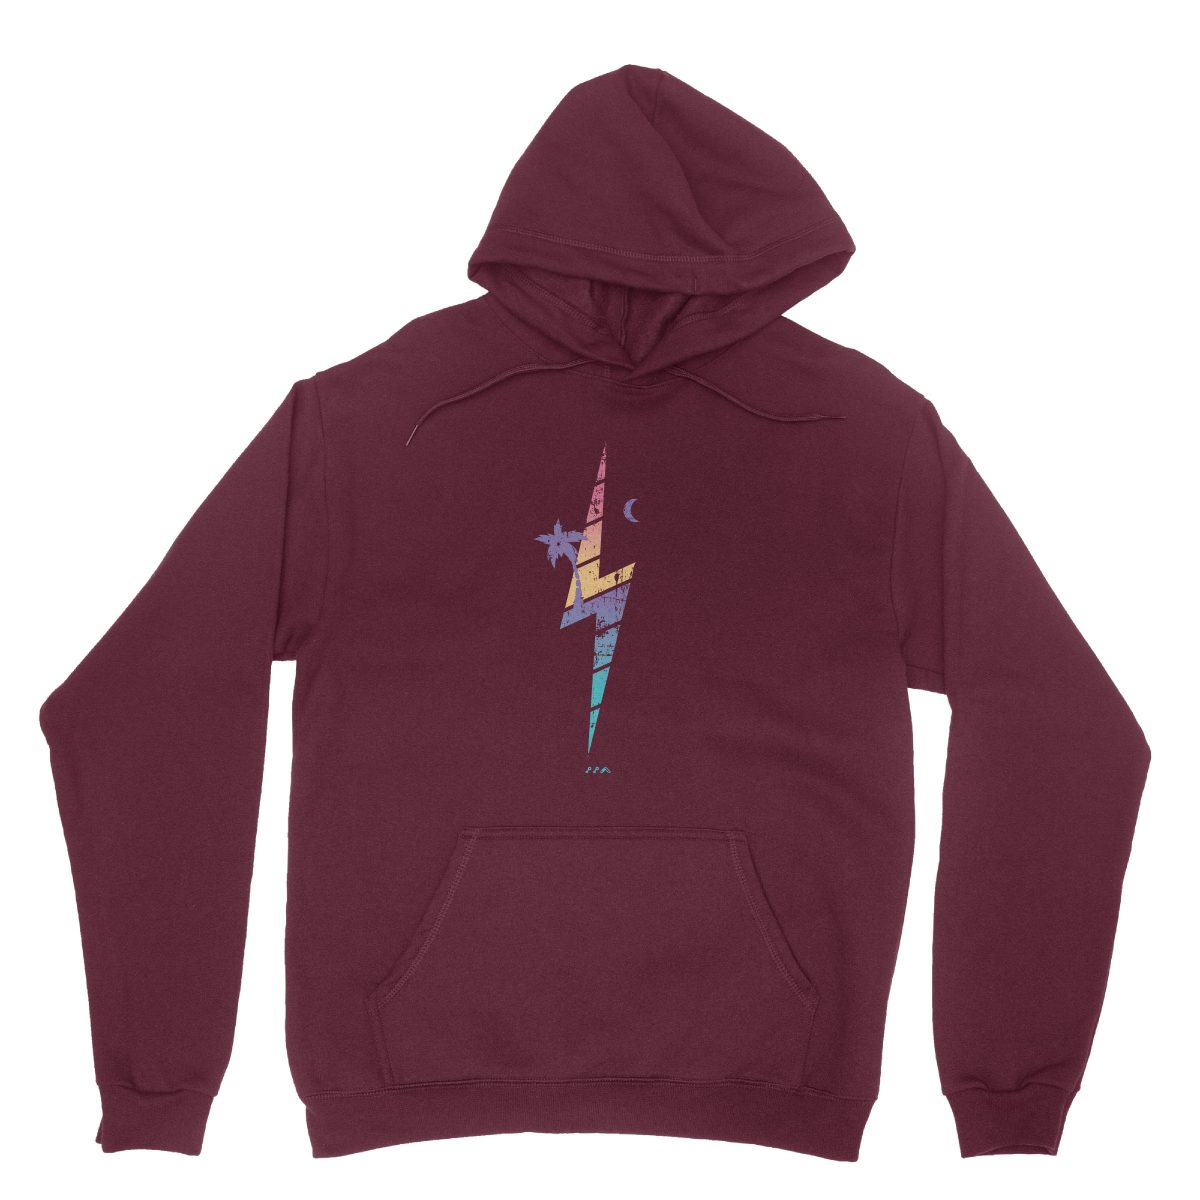 TROPIC THUNDER music festival soft beach hoodies in maroon at kikicutt.com